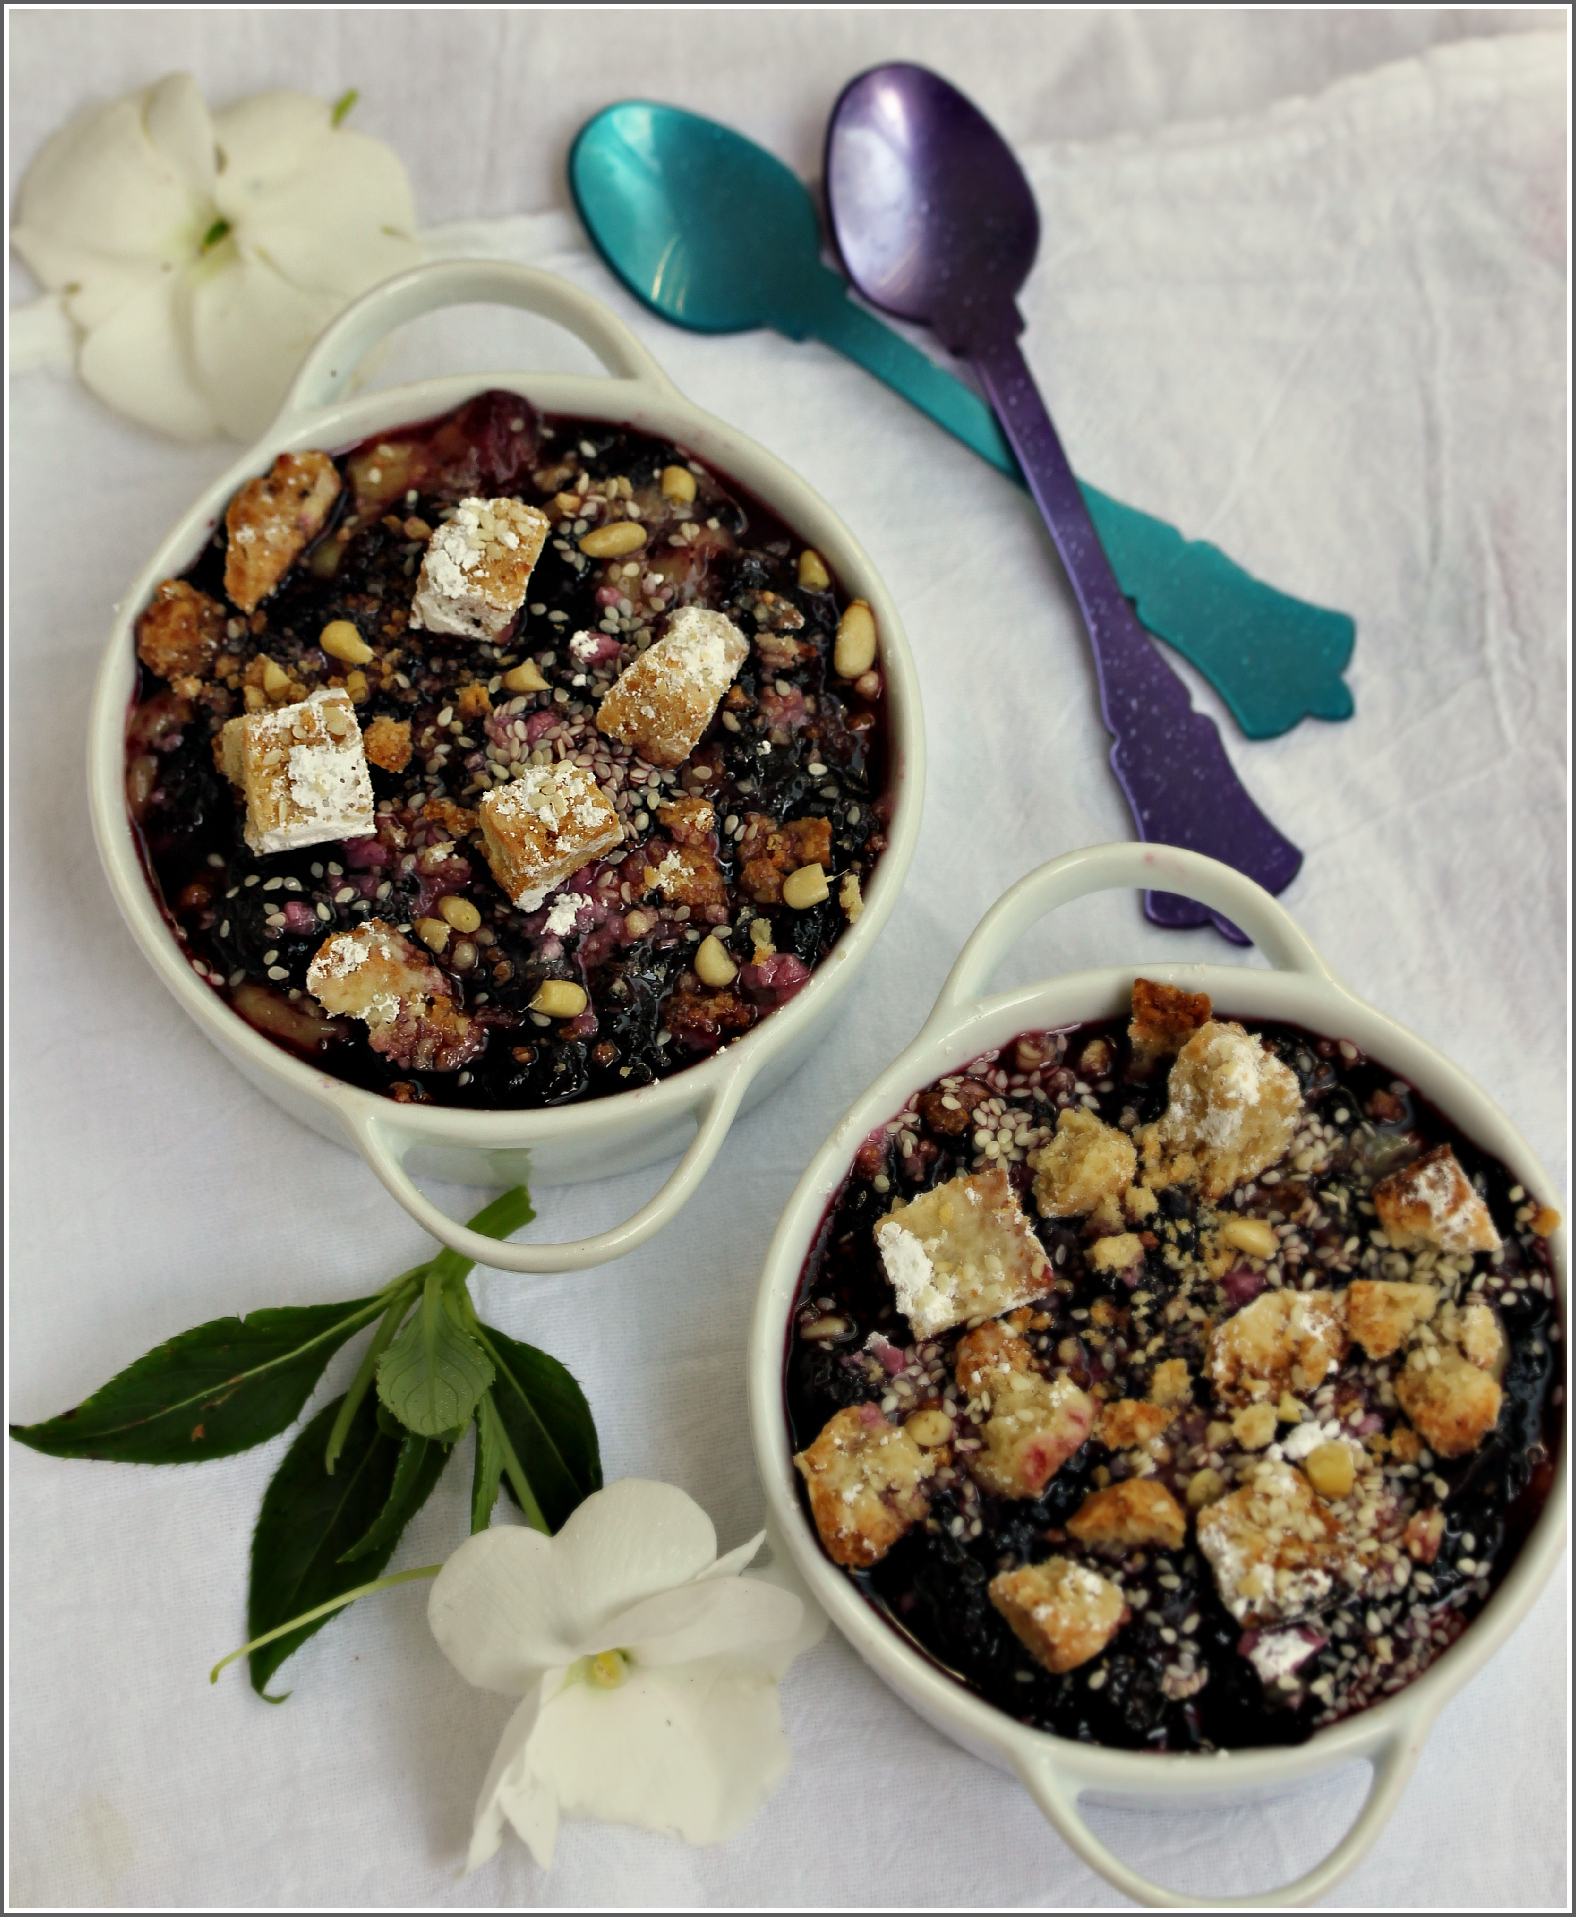 Peach and Blueberry Cobbler with Spoons by Dena T Bray©